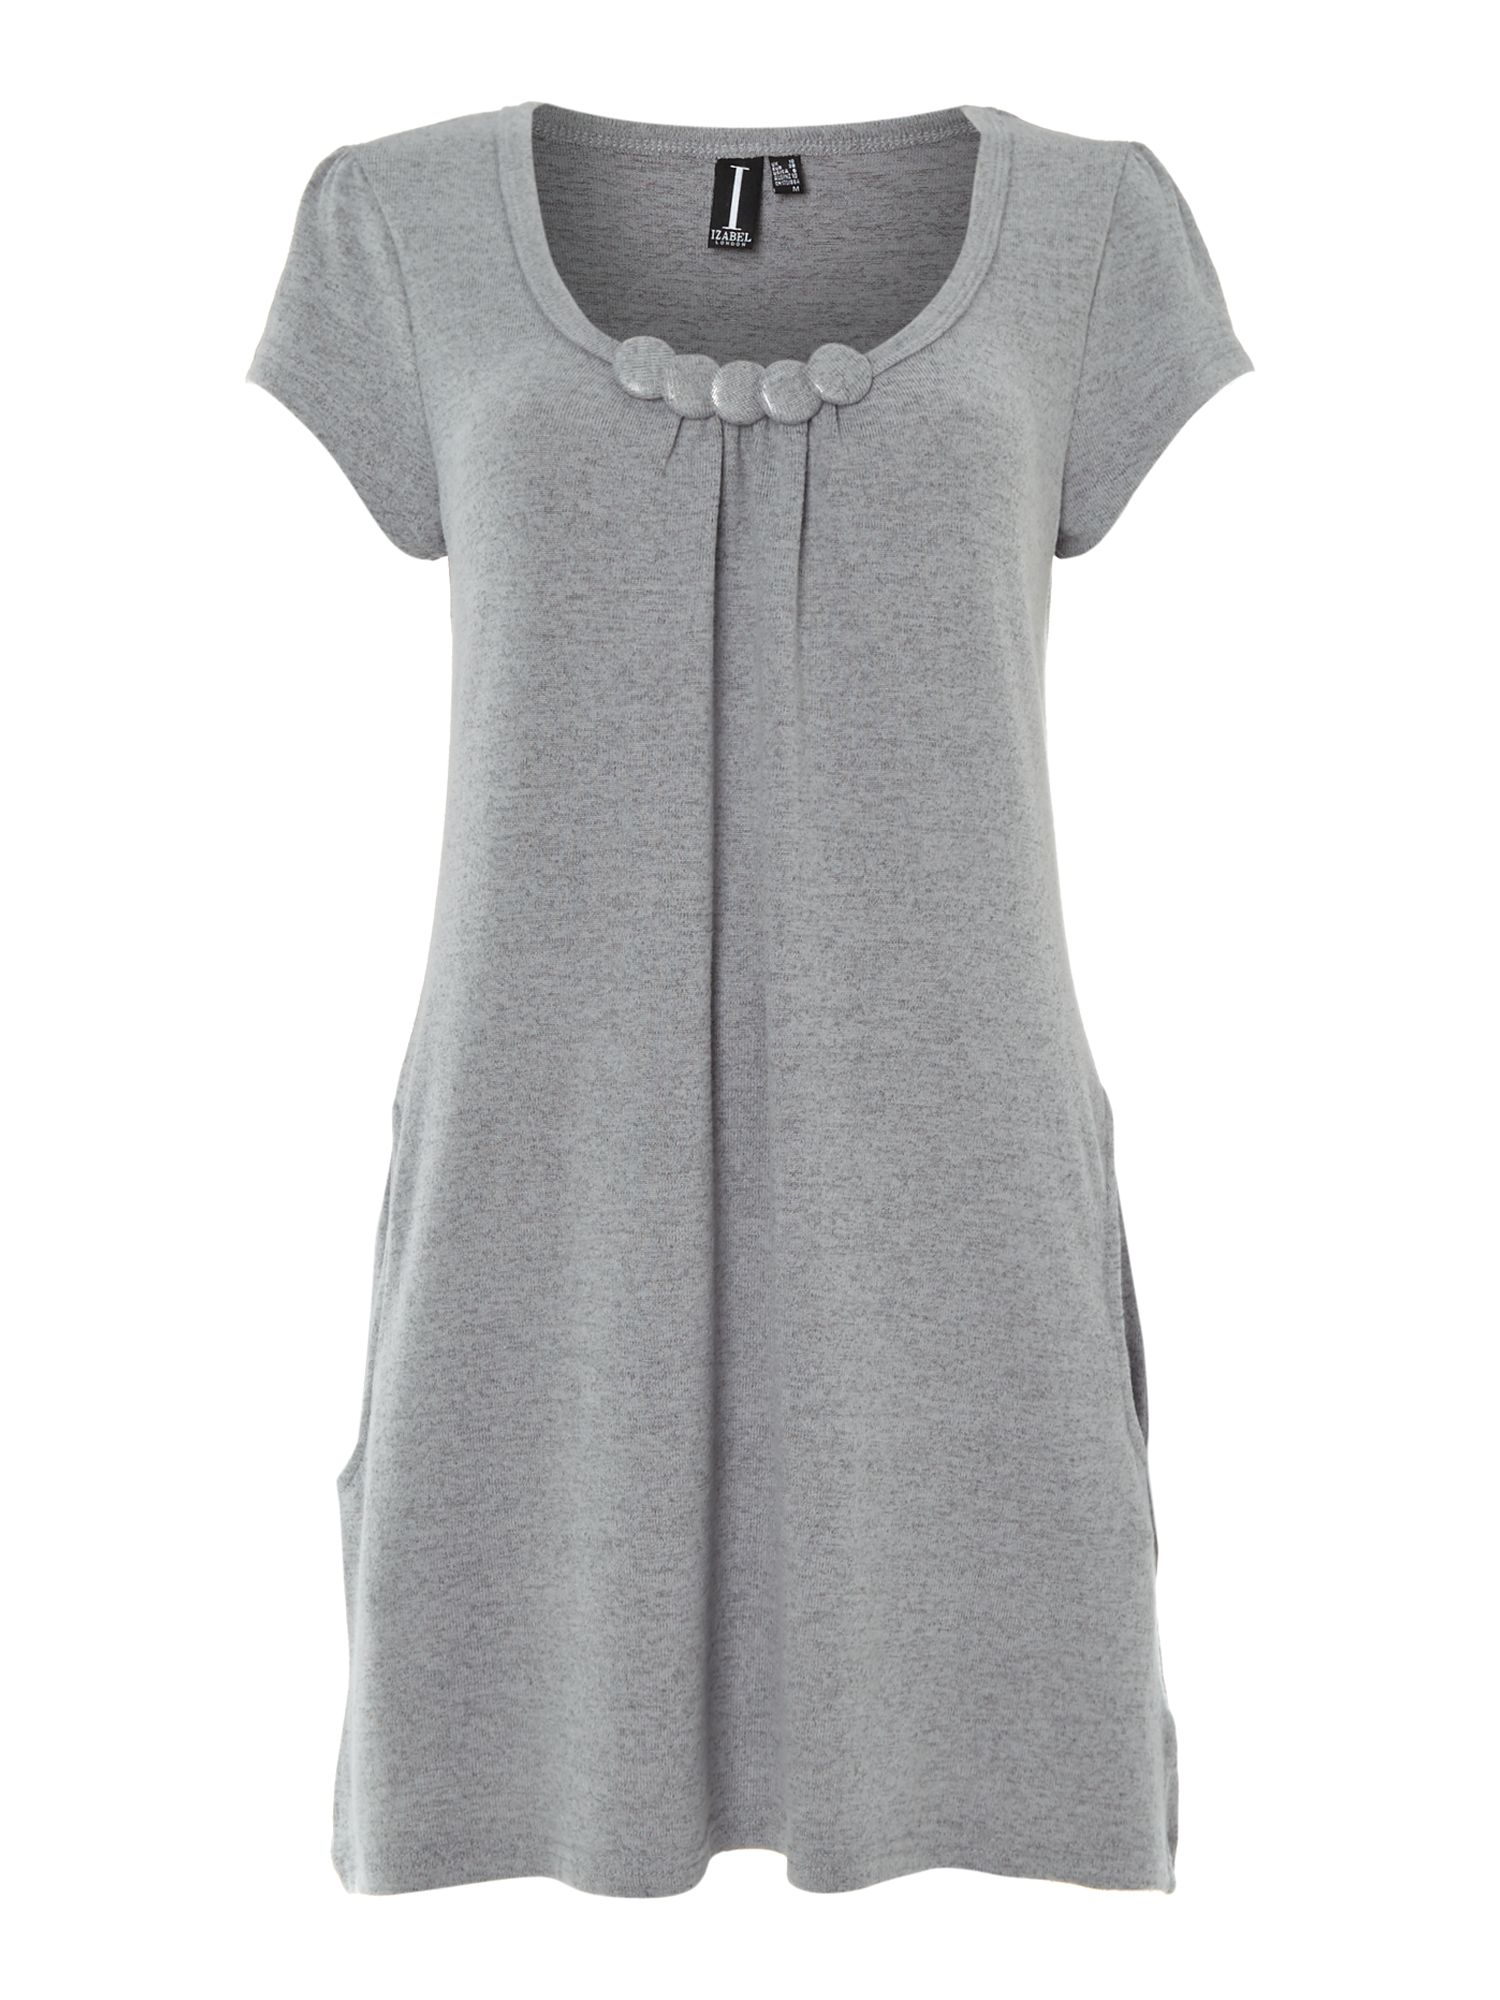 5 button smock dress with pockets